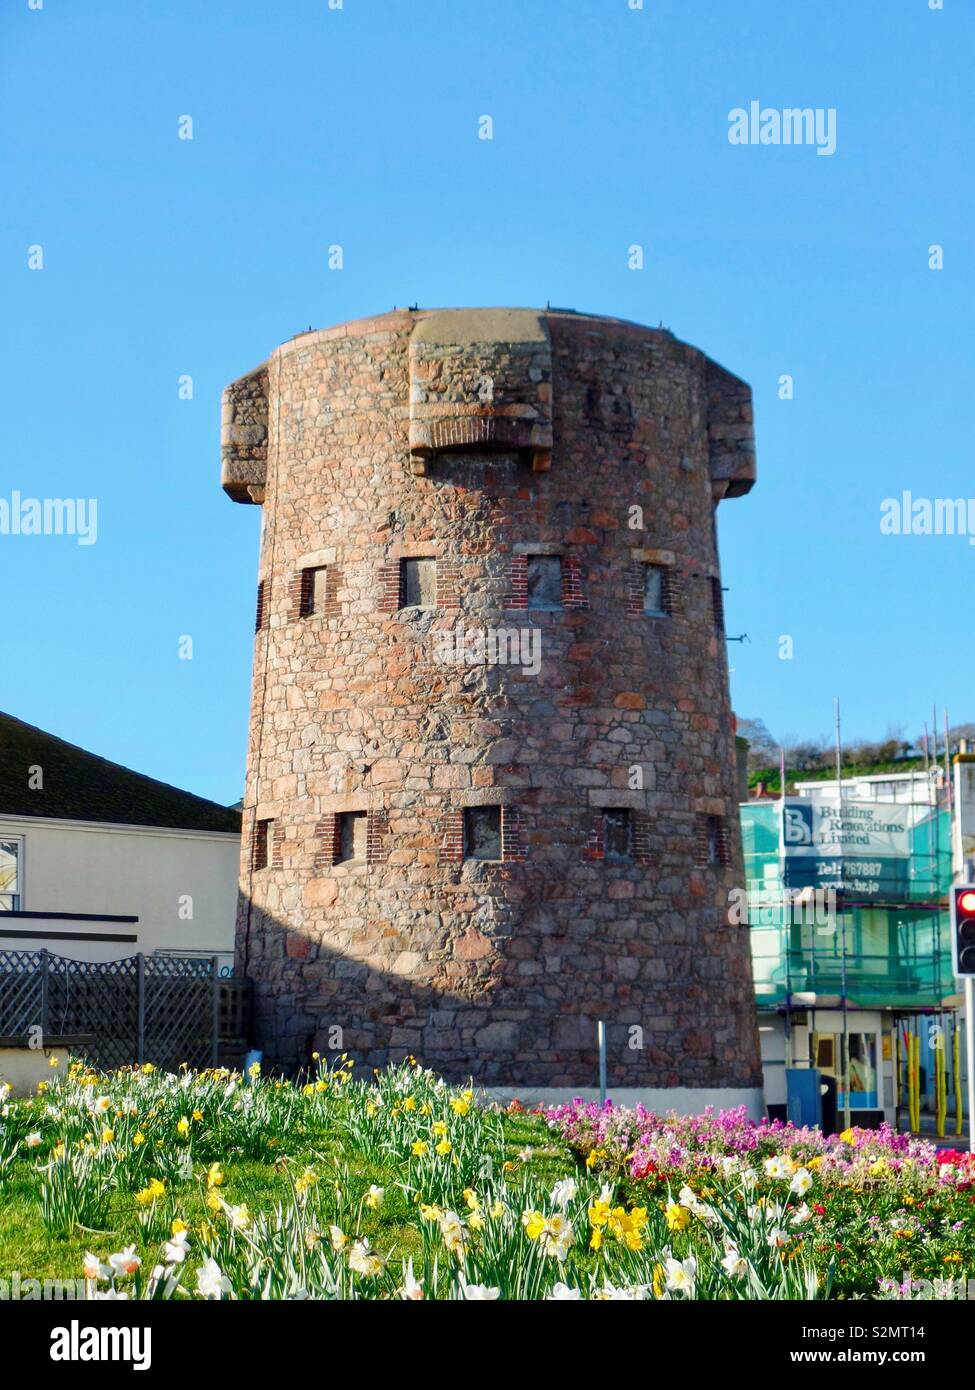 First Tower Jersey Stock Photo - Alamy